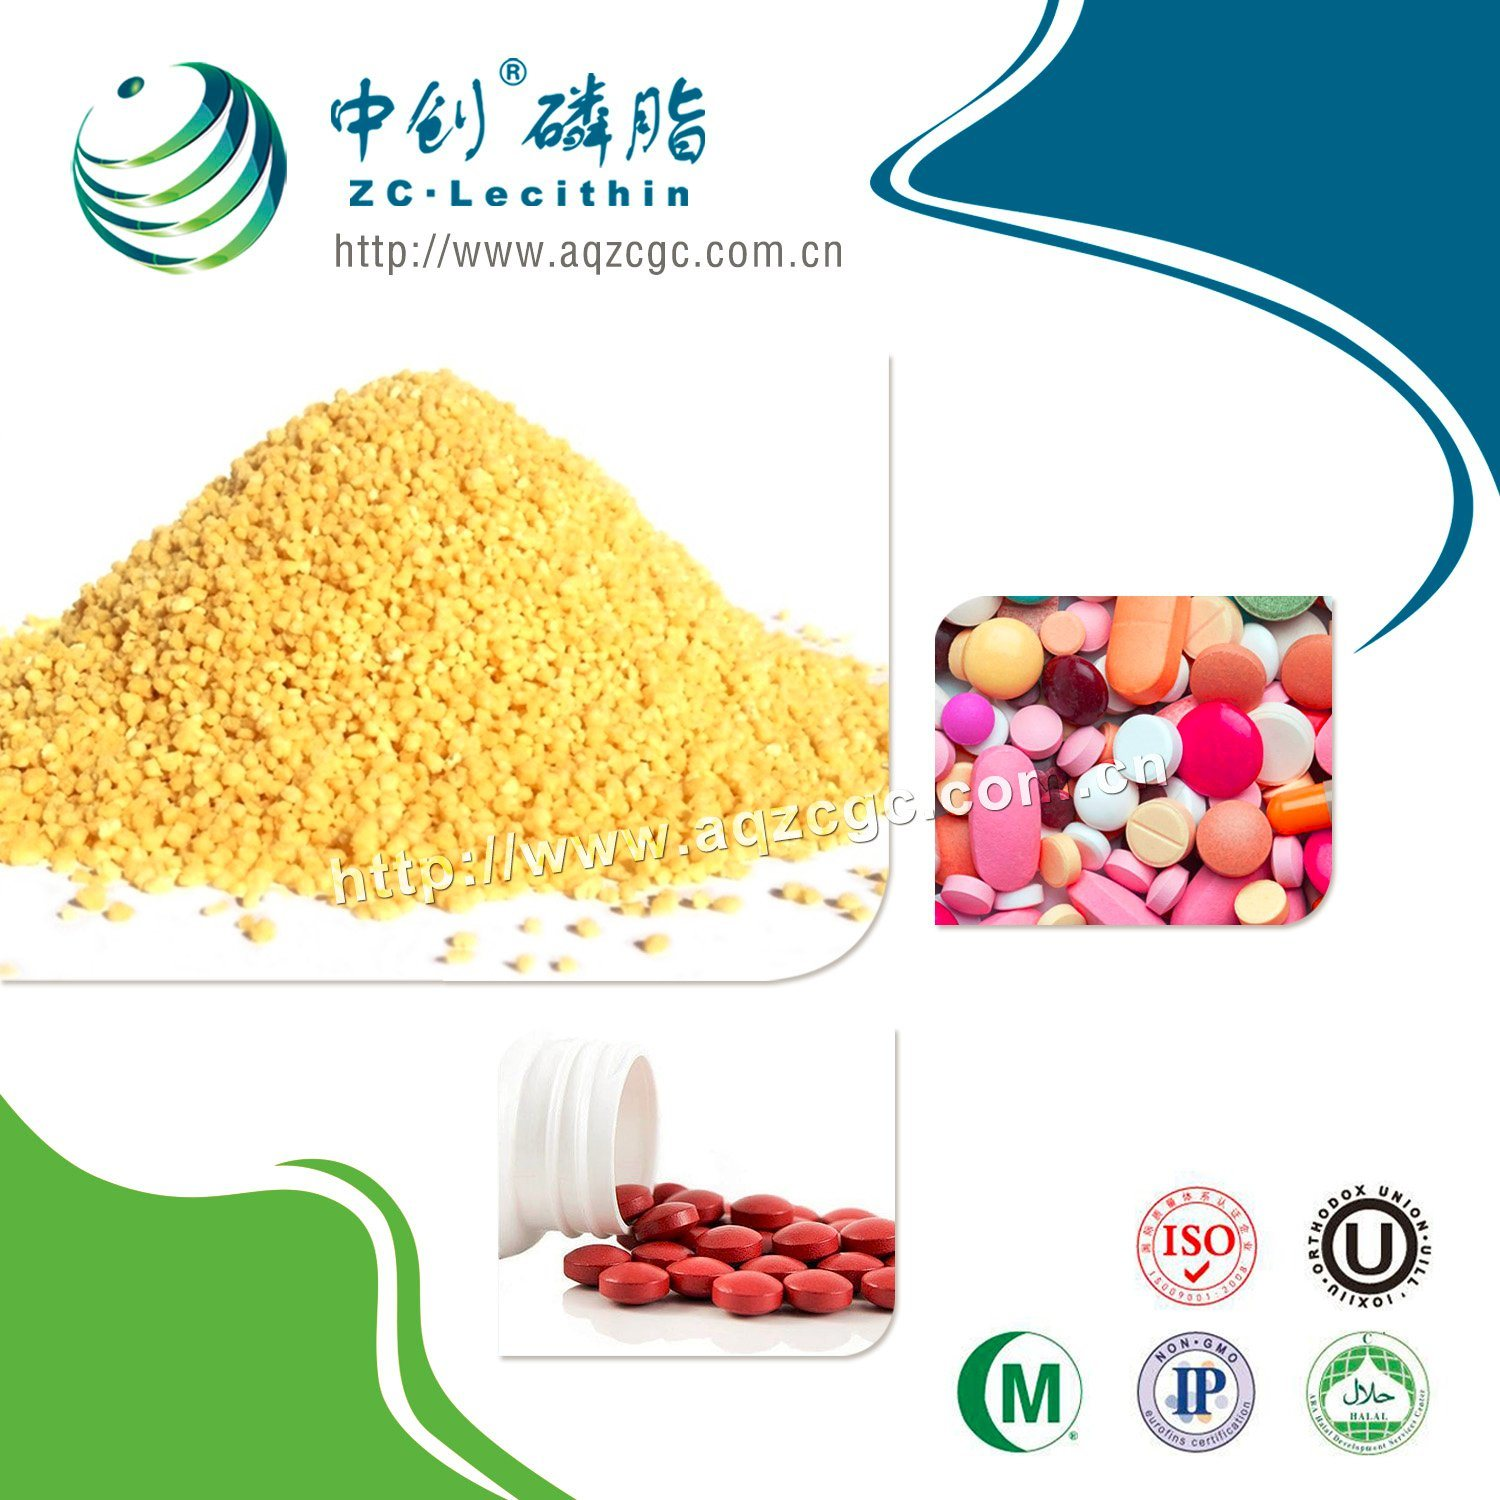 Soy Lecithin Manufacturers/Factory -Pharmaceutical Grade Soy Lecithin (Granule)